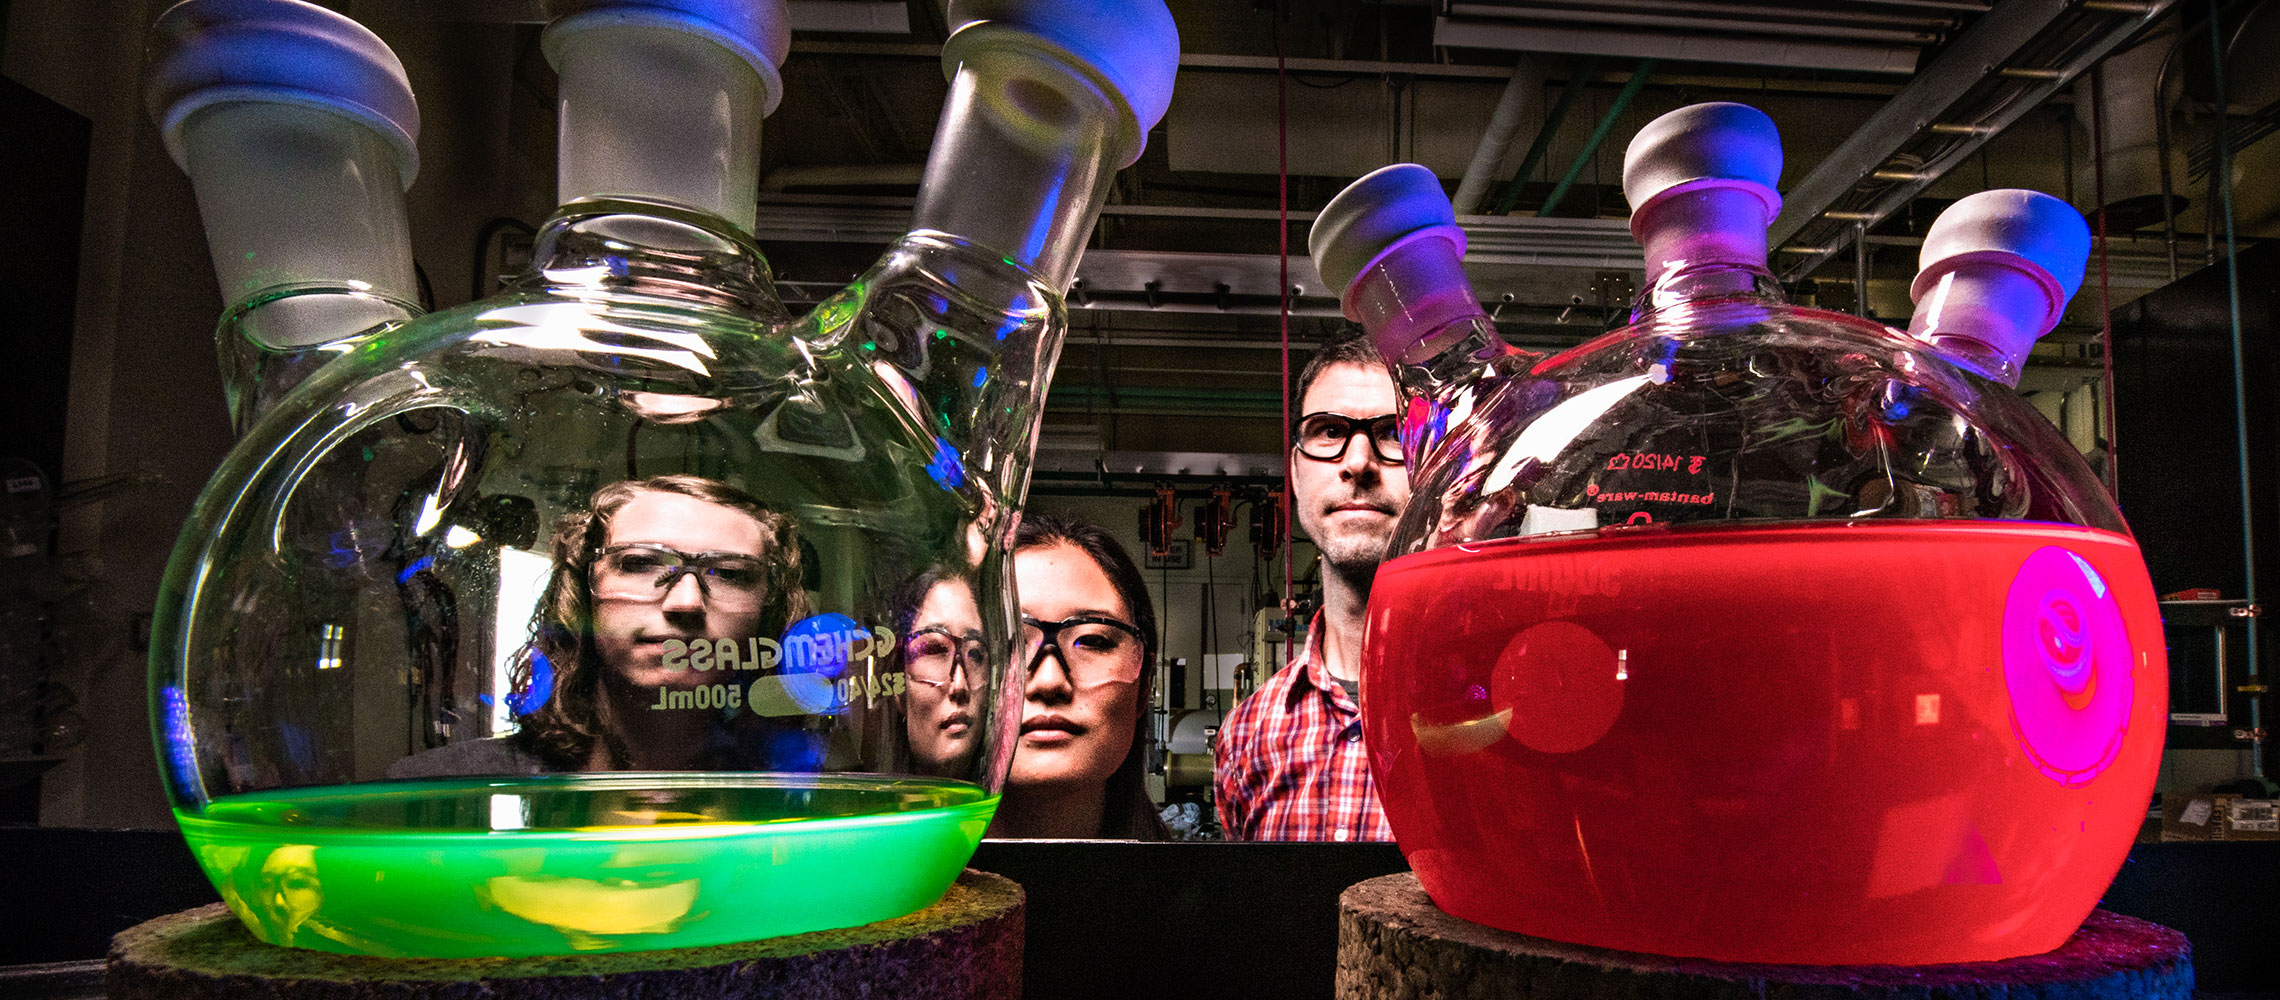 Photo of two laboratory beakers with a male and two females standing behind them.